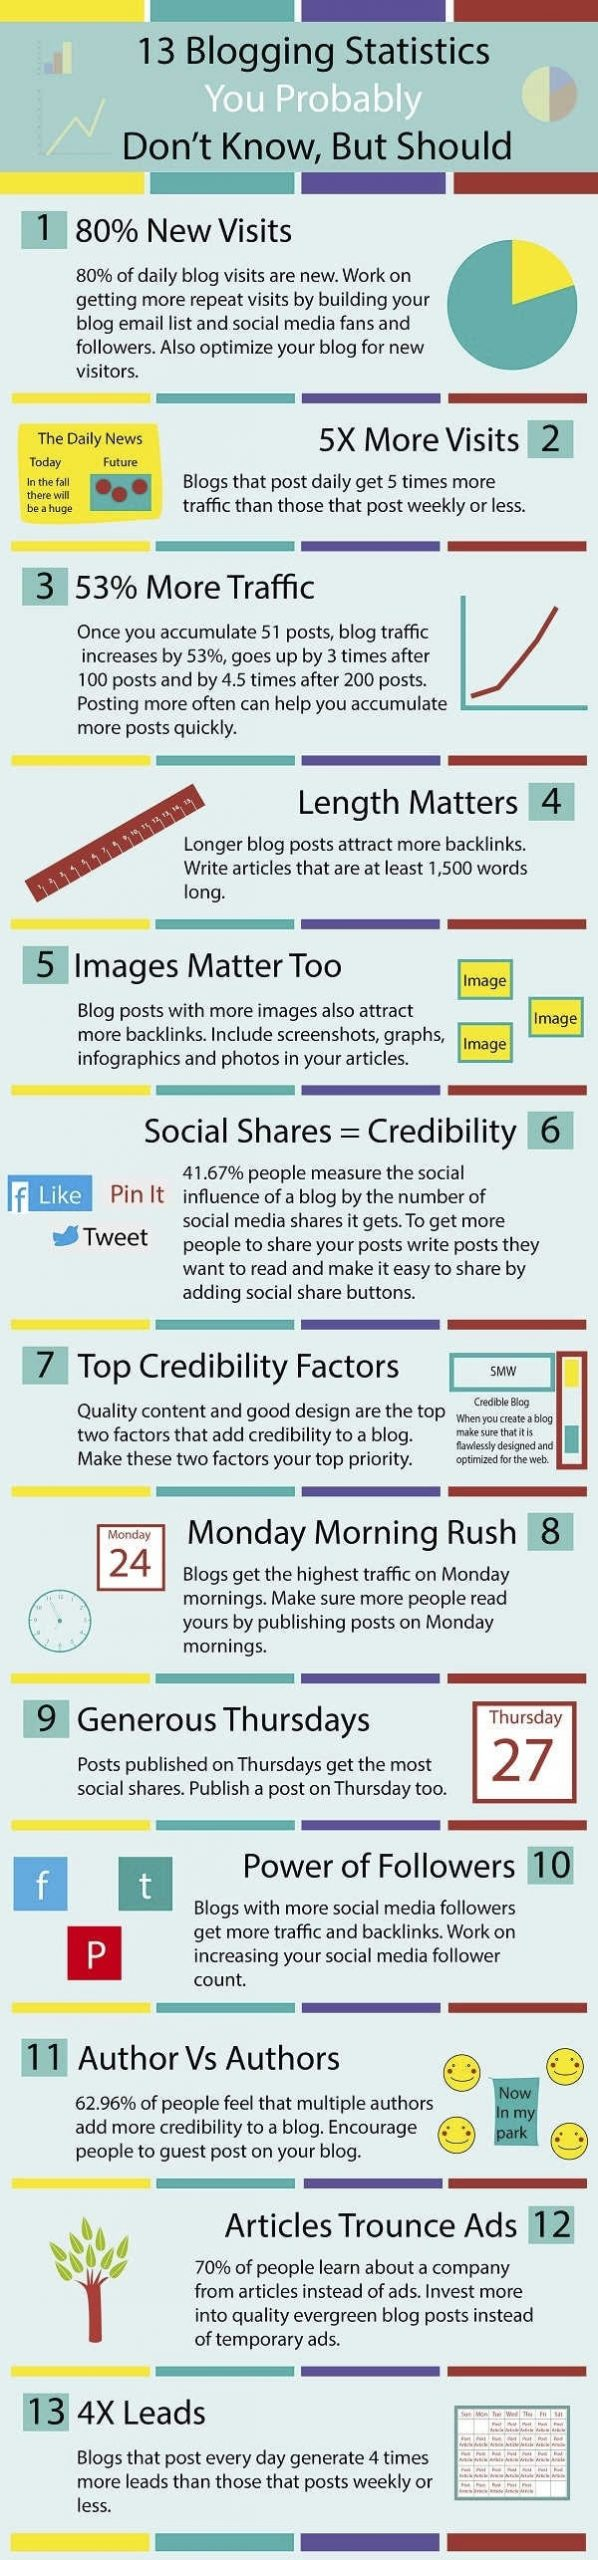 blogging statistics which are important for blog